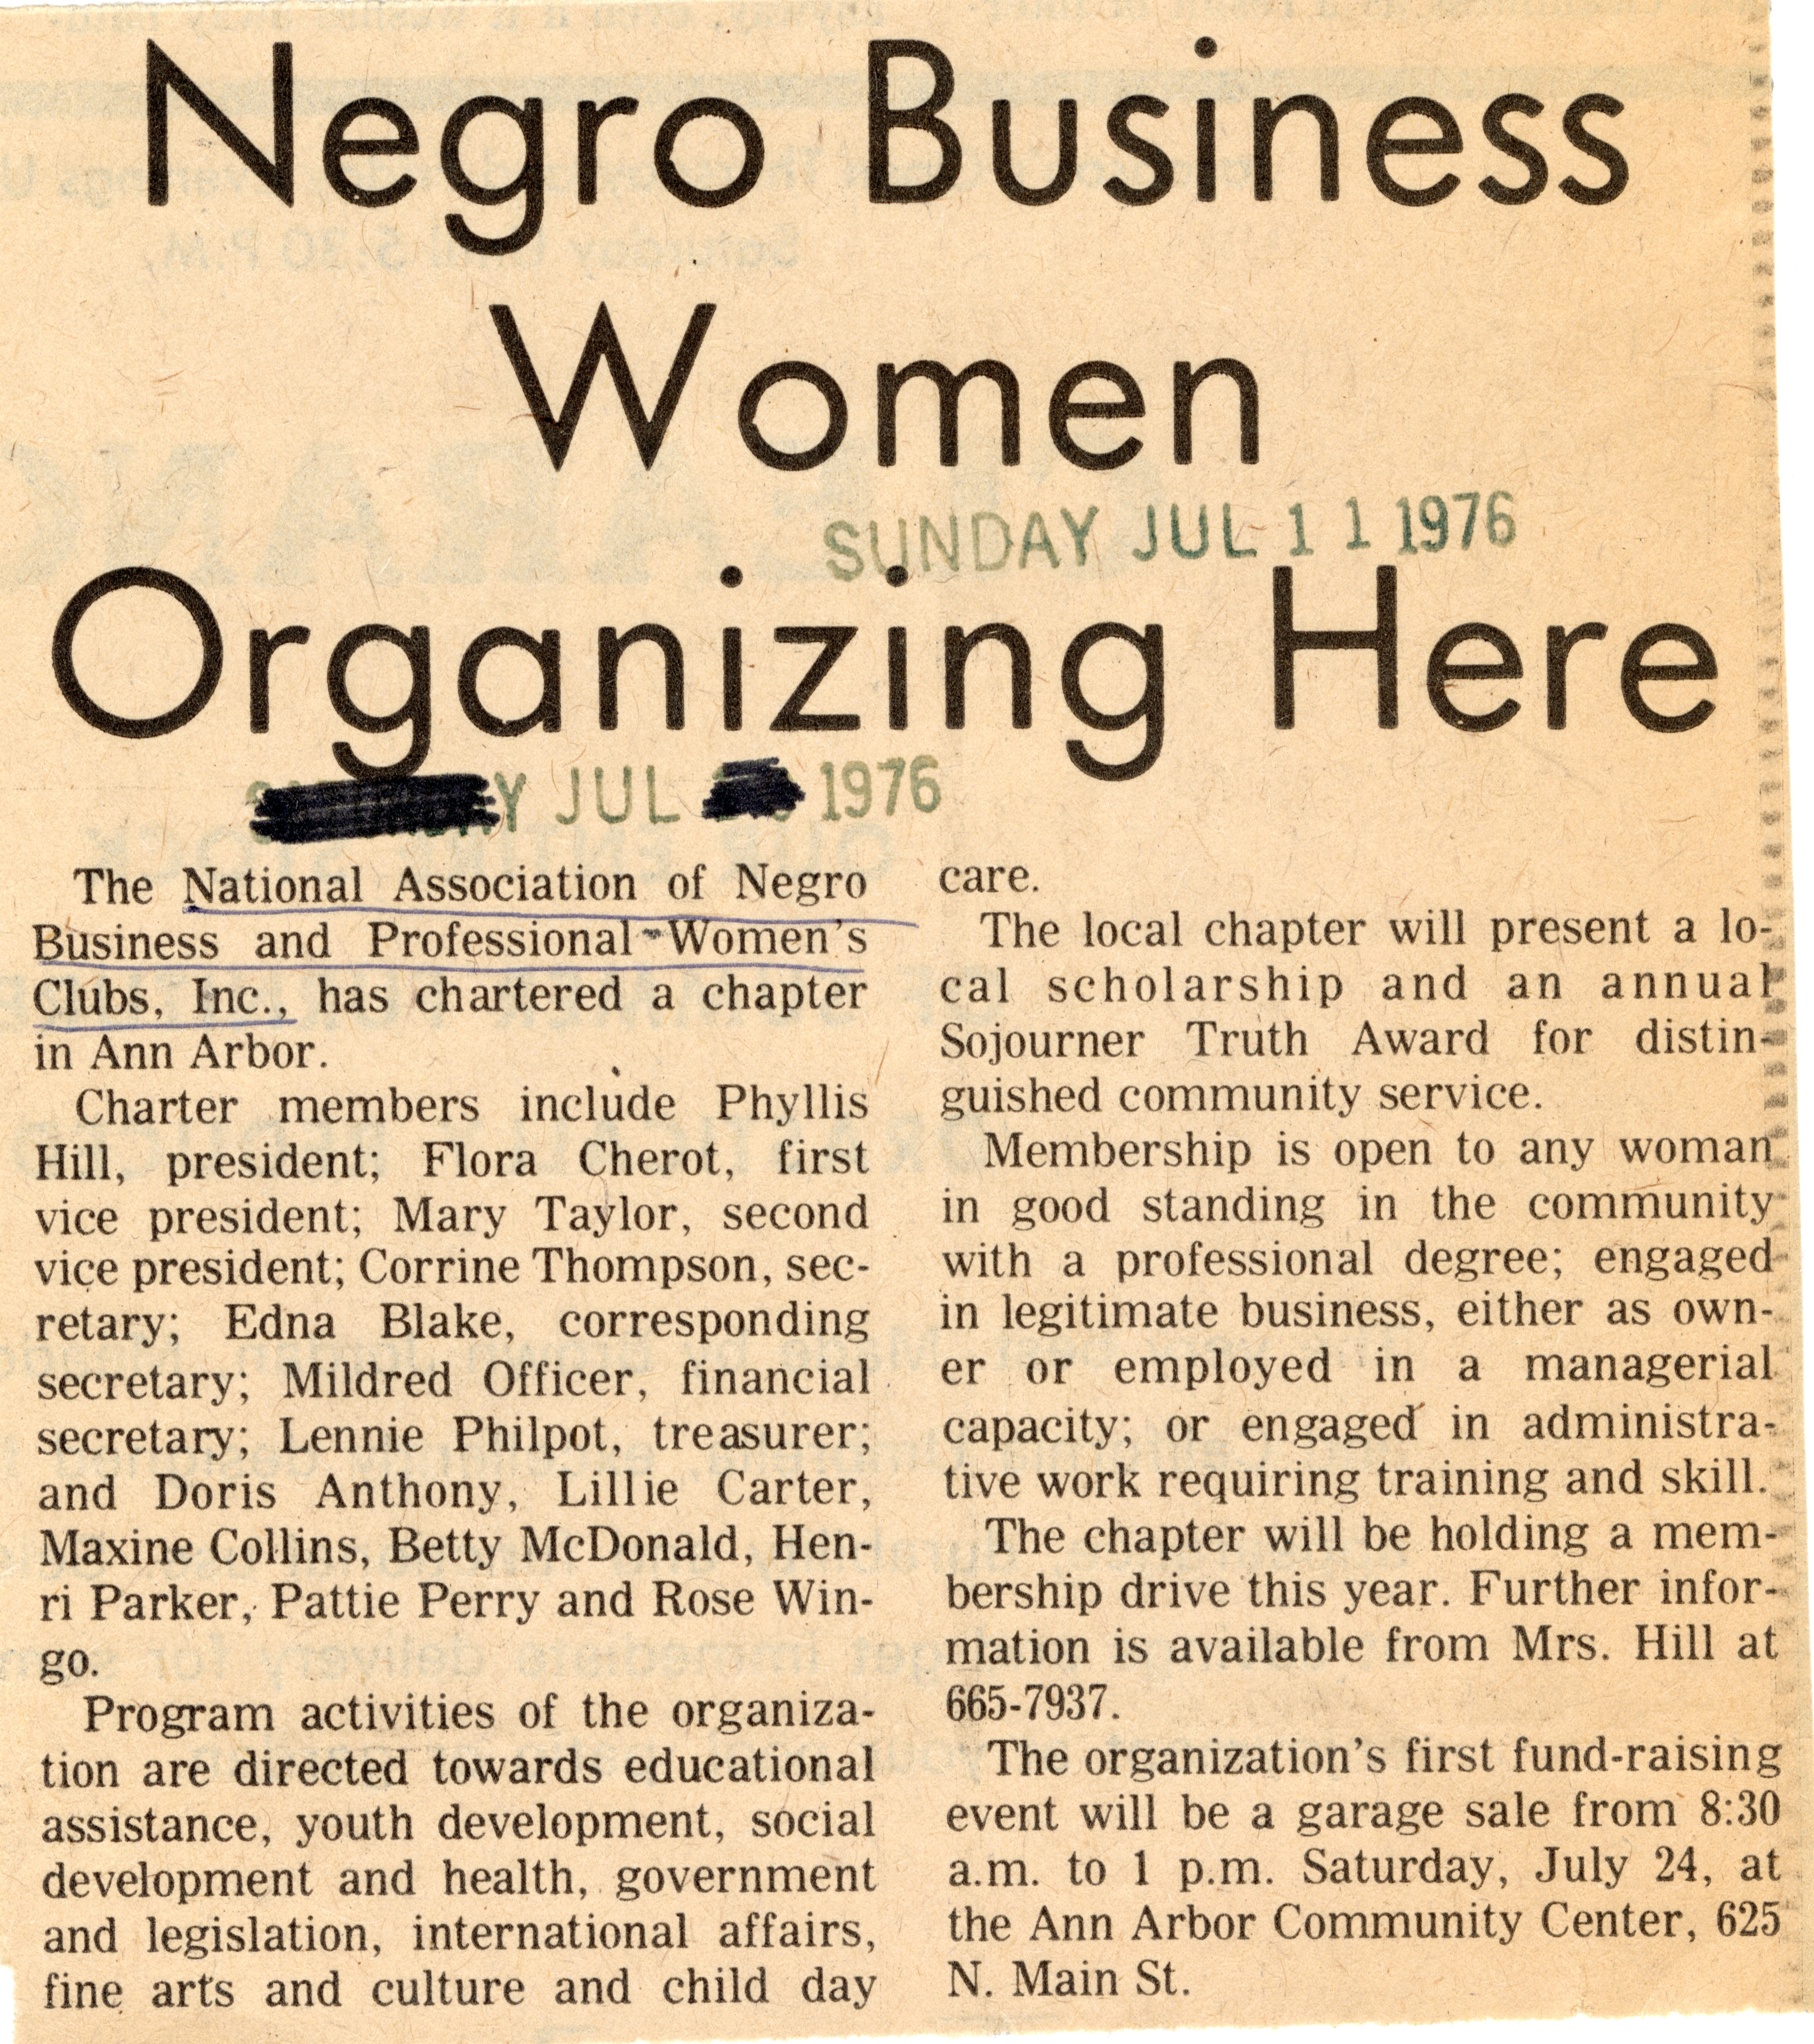 Negro Business Women Organizing Here image